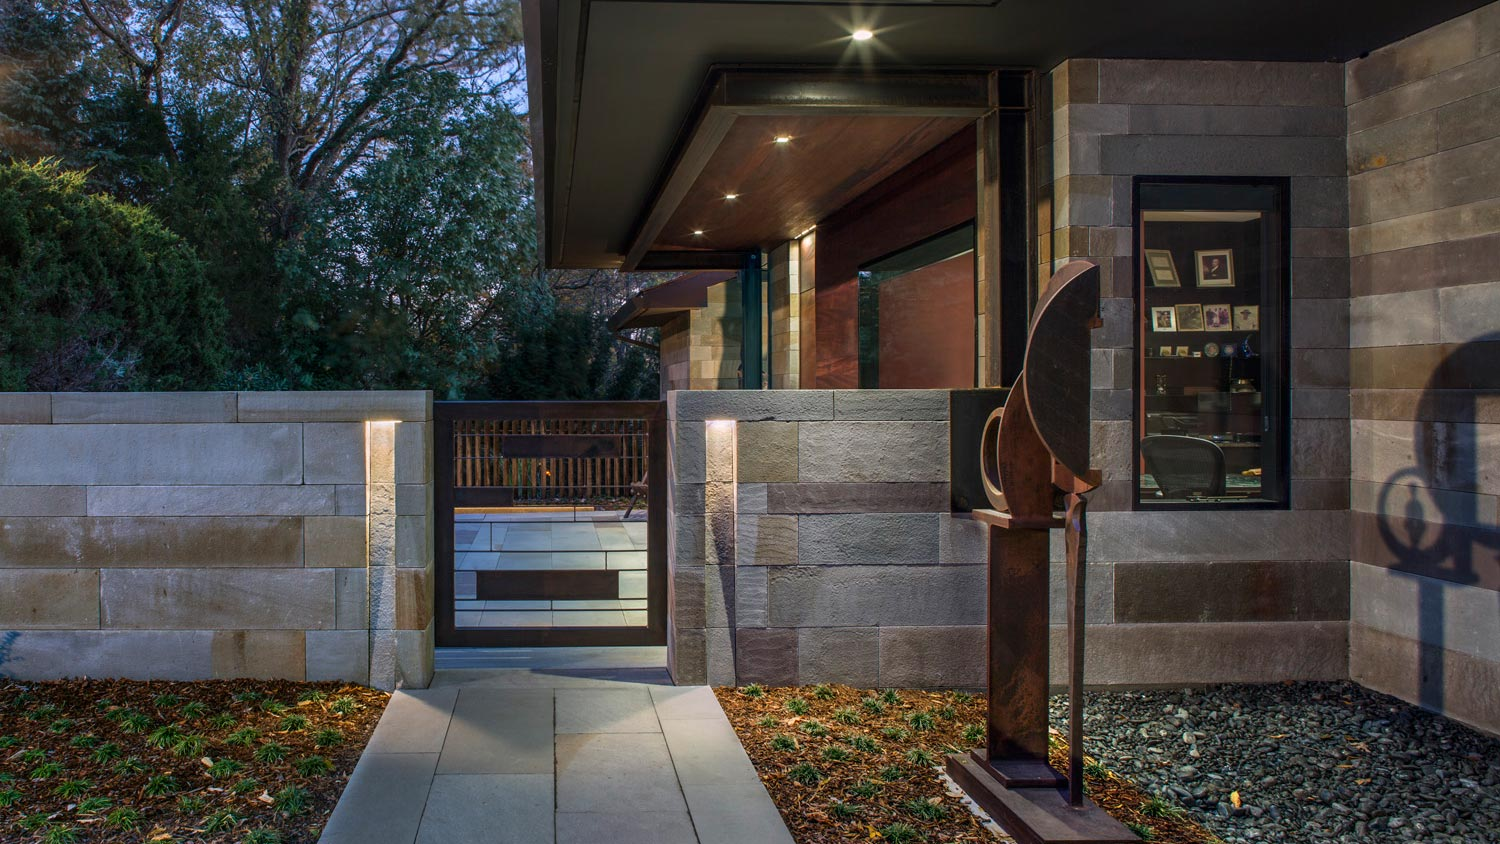 entry gate-stone and wood-evening lit